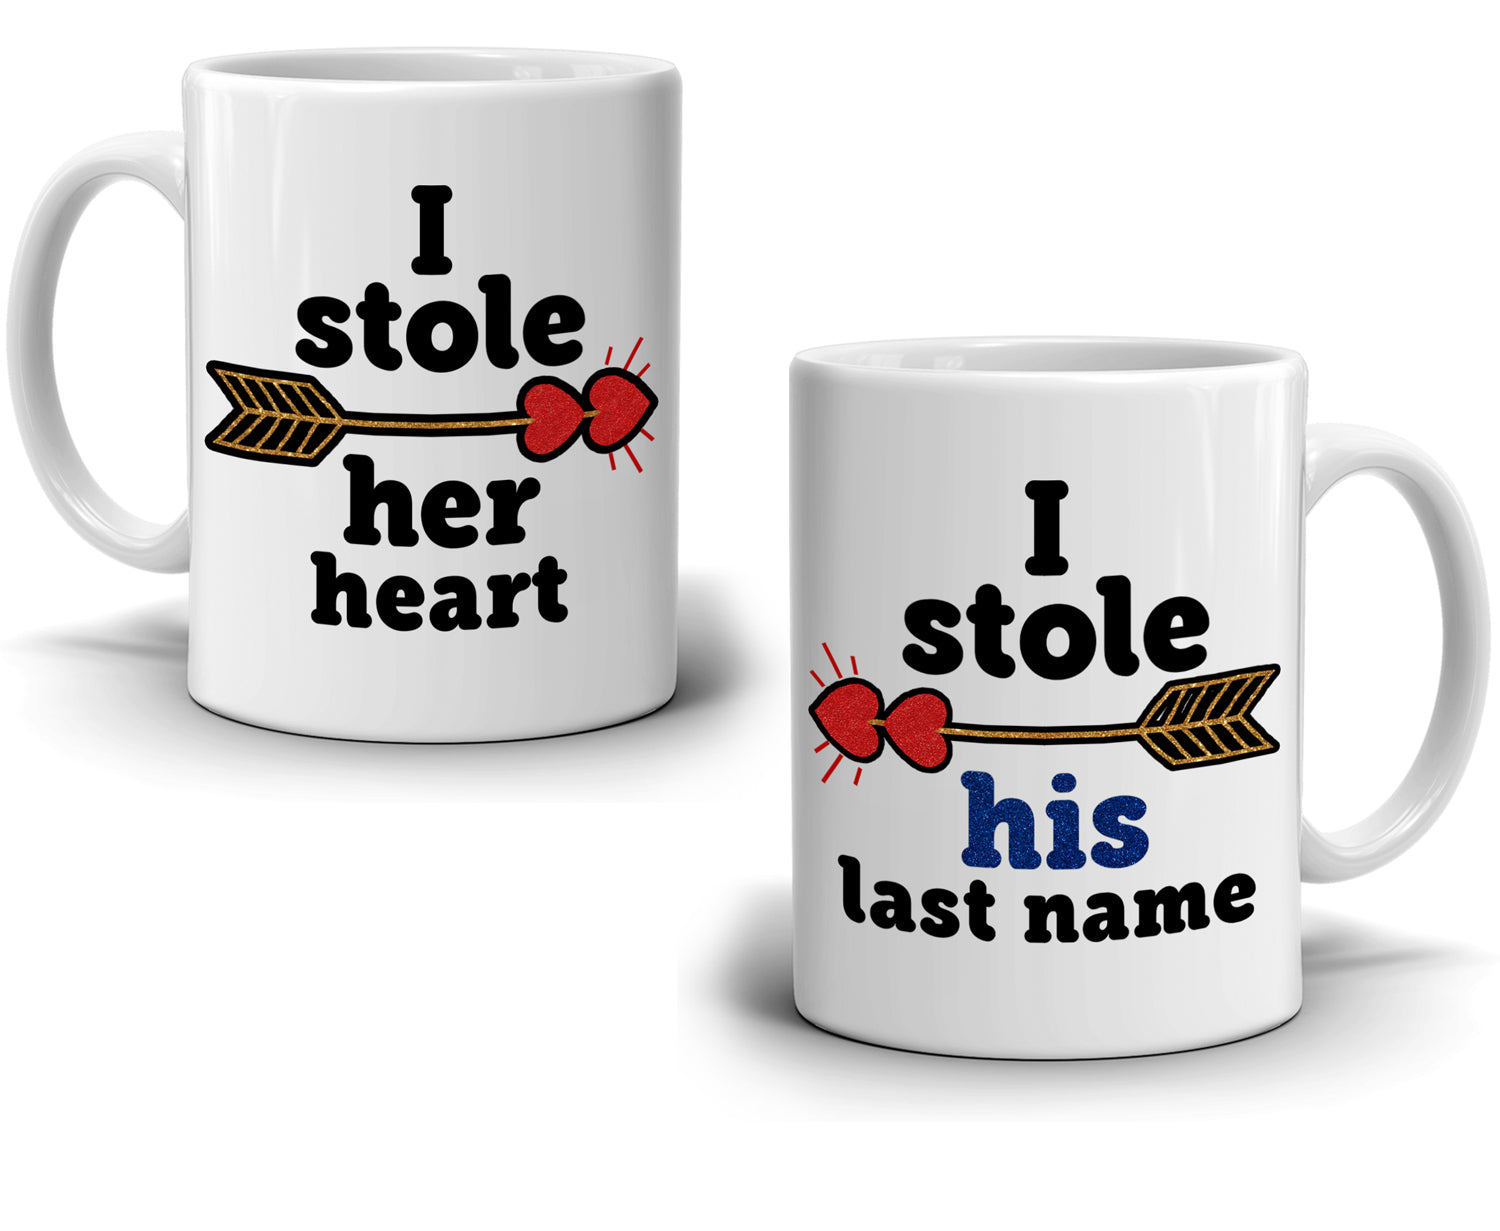 I Stole Her Heart I Stole His Last Name Couple S Coffee Mug Set Stir Crazy Gifts